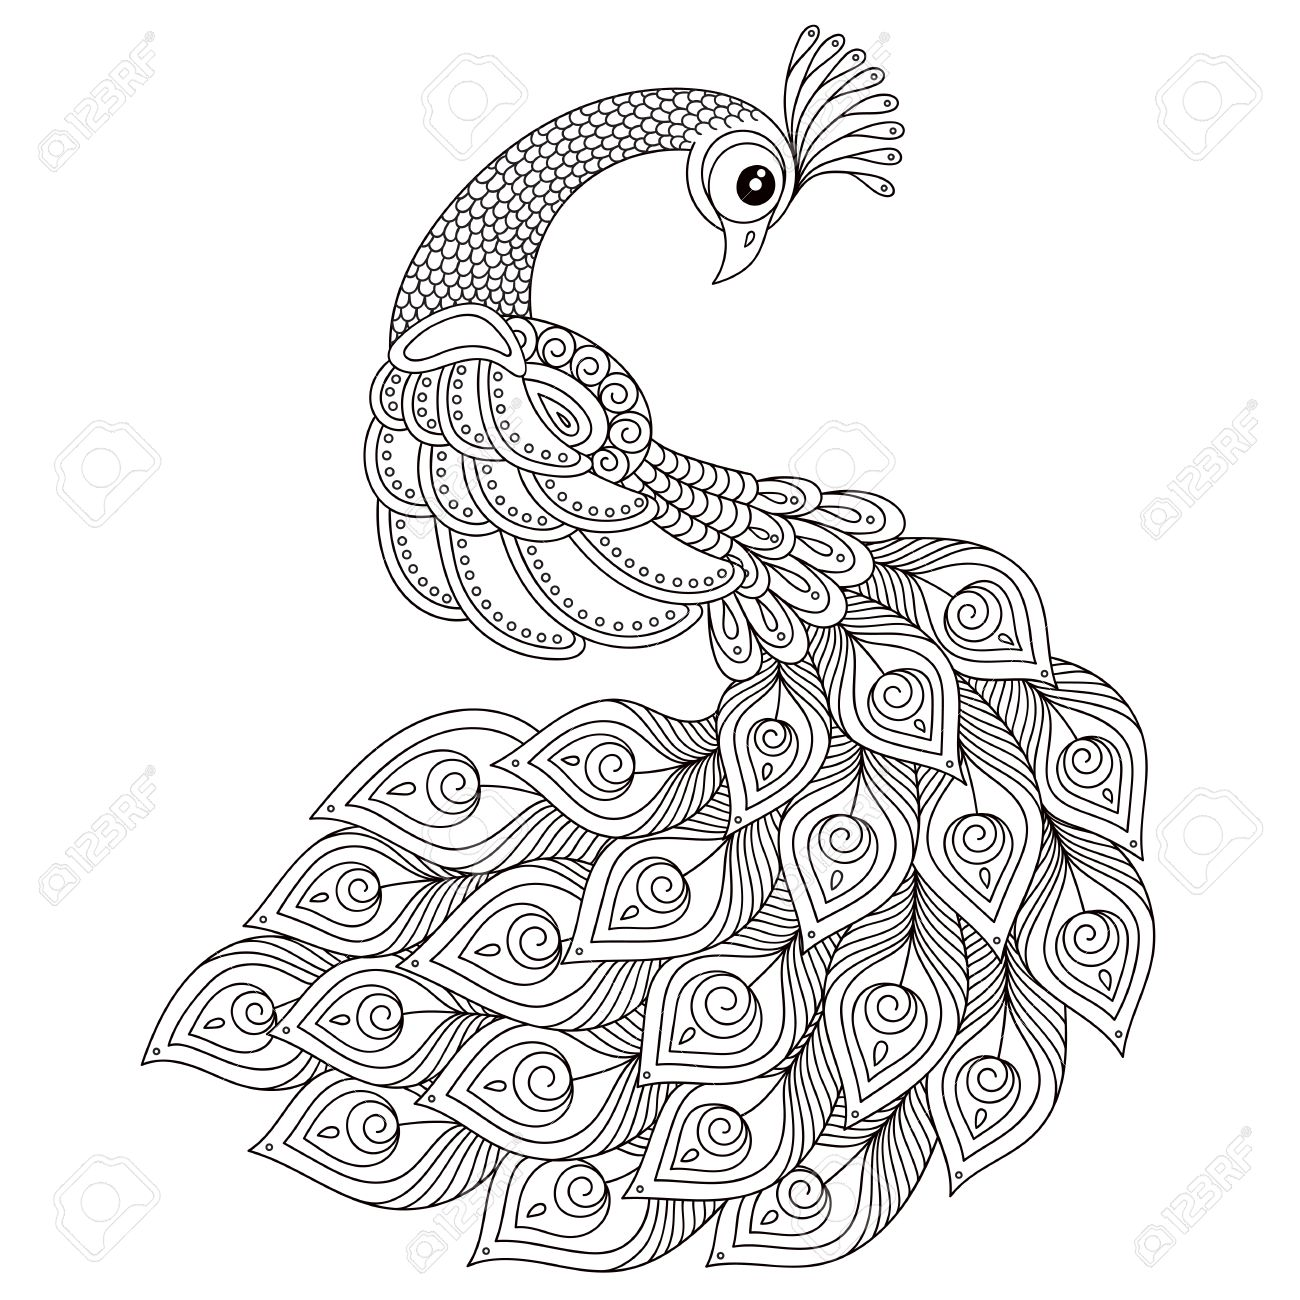 Peacock. Adult antistress coloring page. Black and white hand drawn doodle for coloring book. Isolated on white background - 55847685